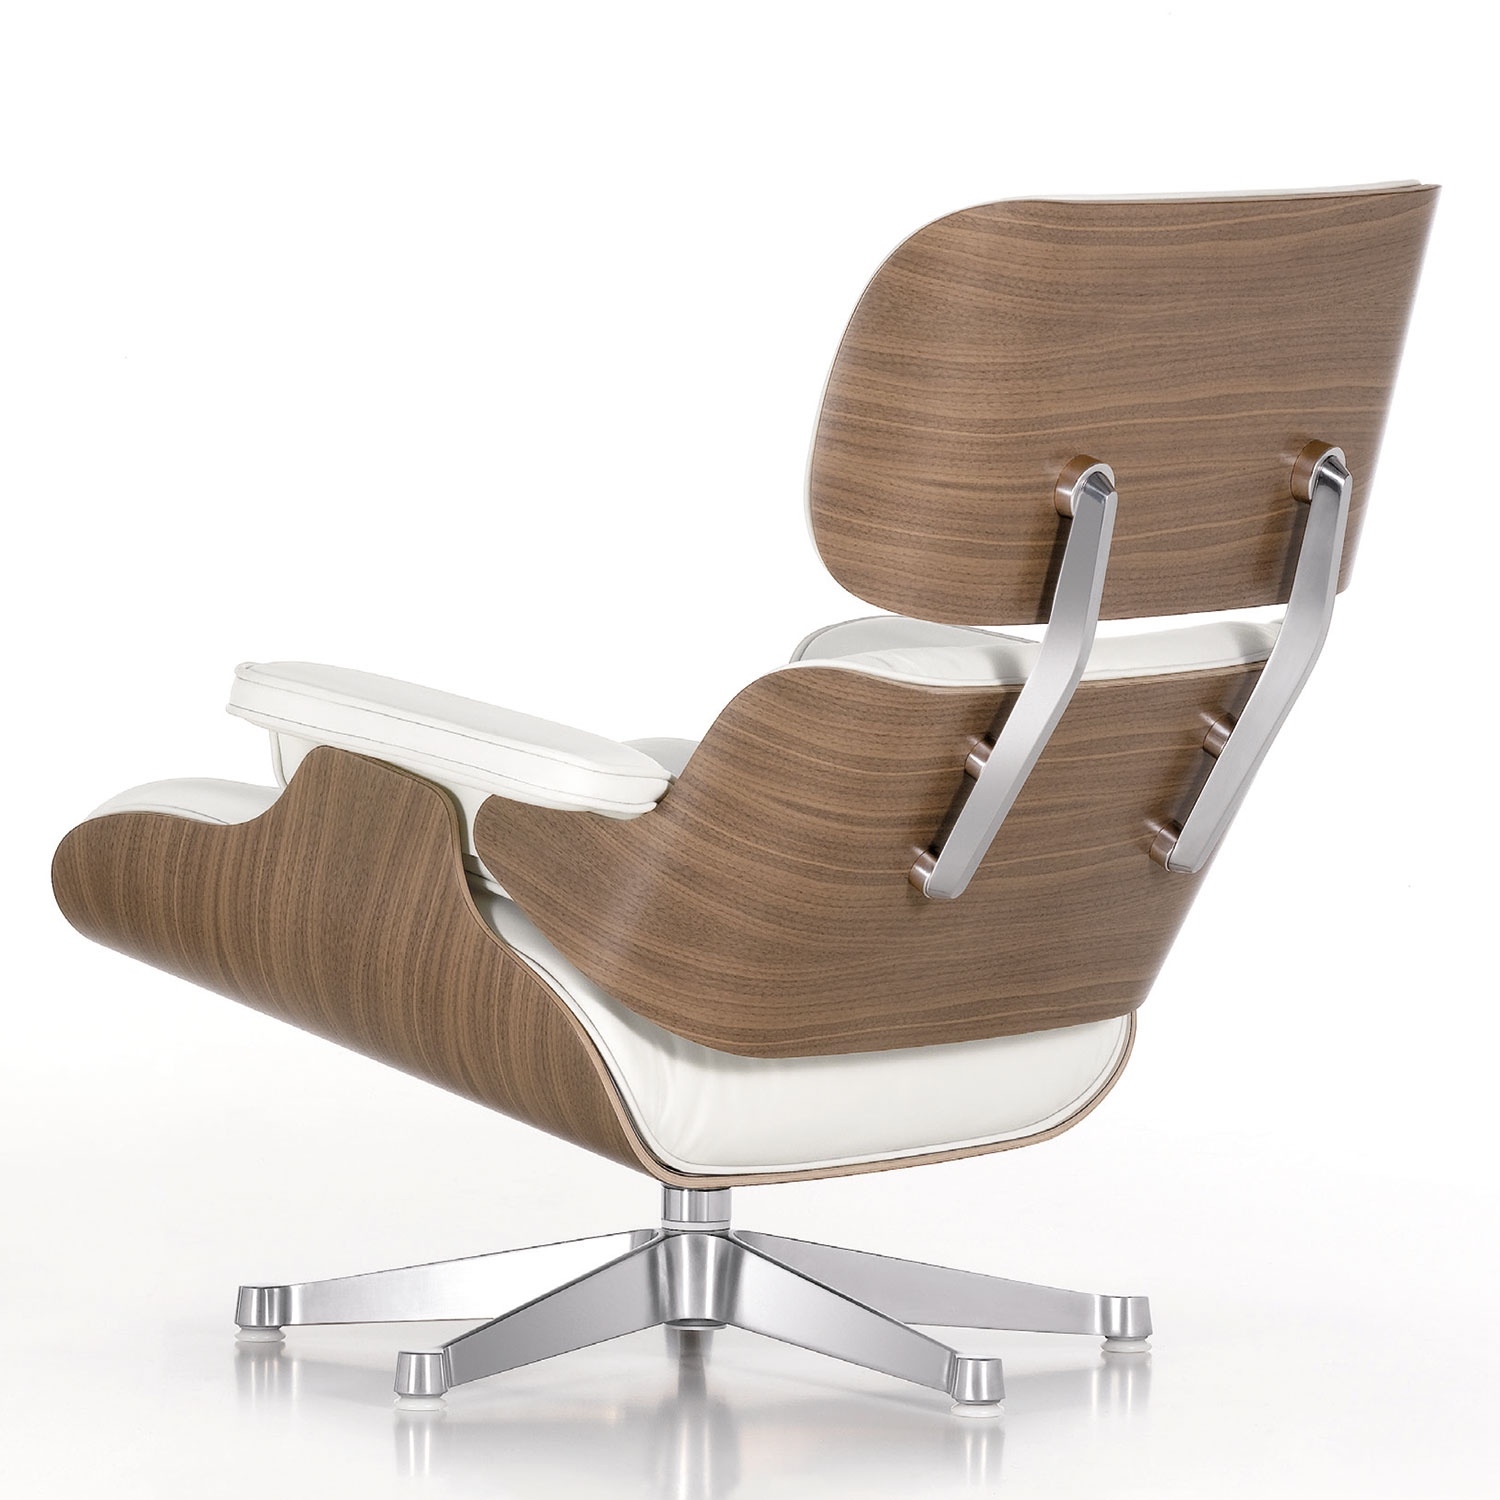 Vitra lounge chair white nussbaum leder design eames for Vitra lounge chair nachbau